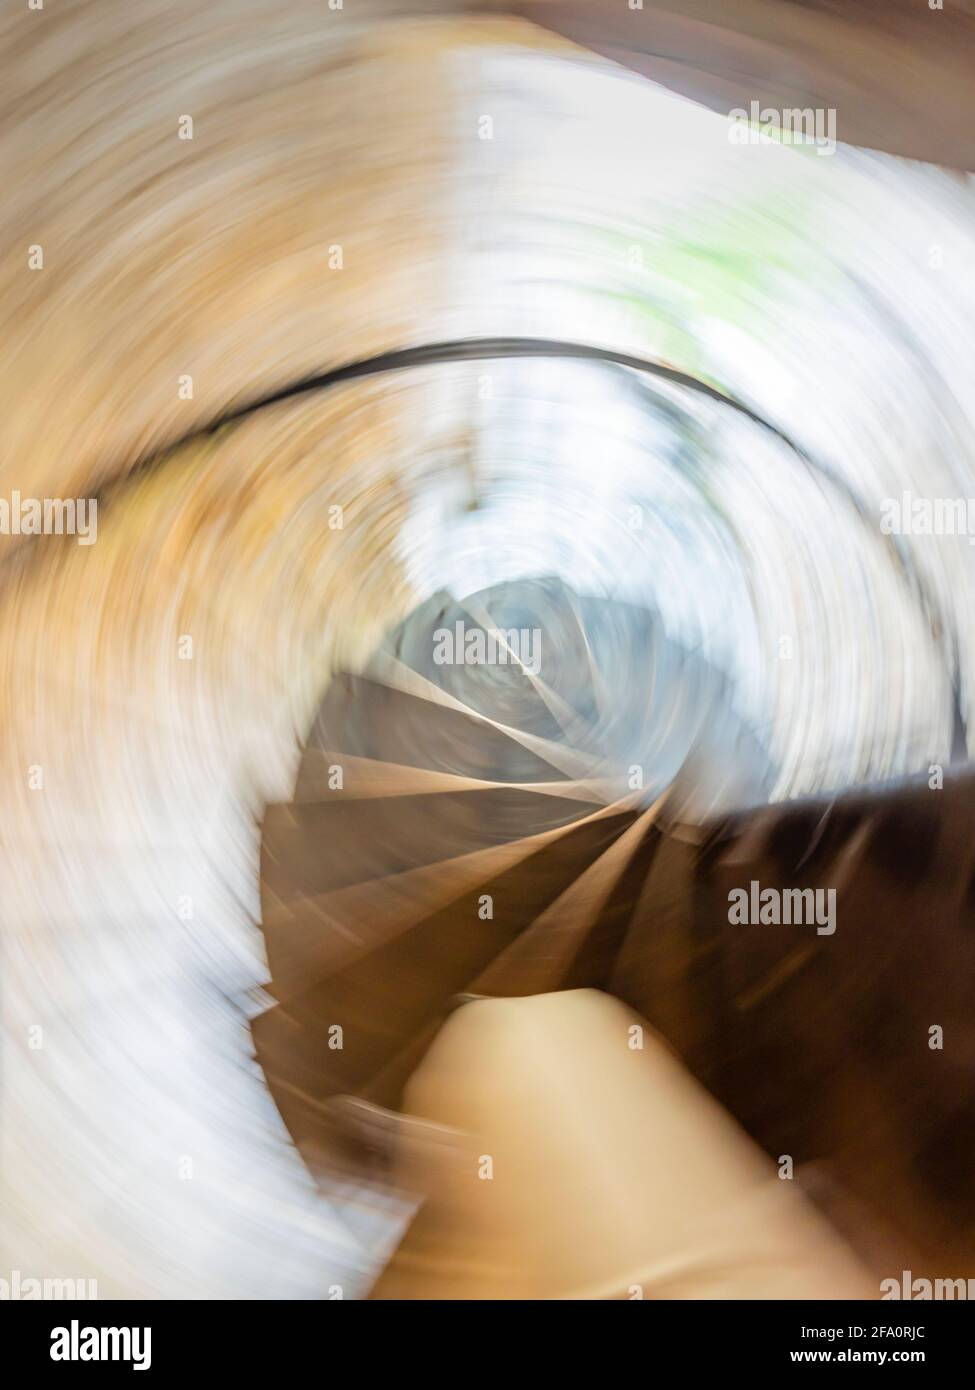 Frantic run downstairs downwards circular staircase frenetic intentionally blurry running down Stock Photo